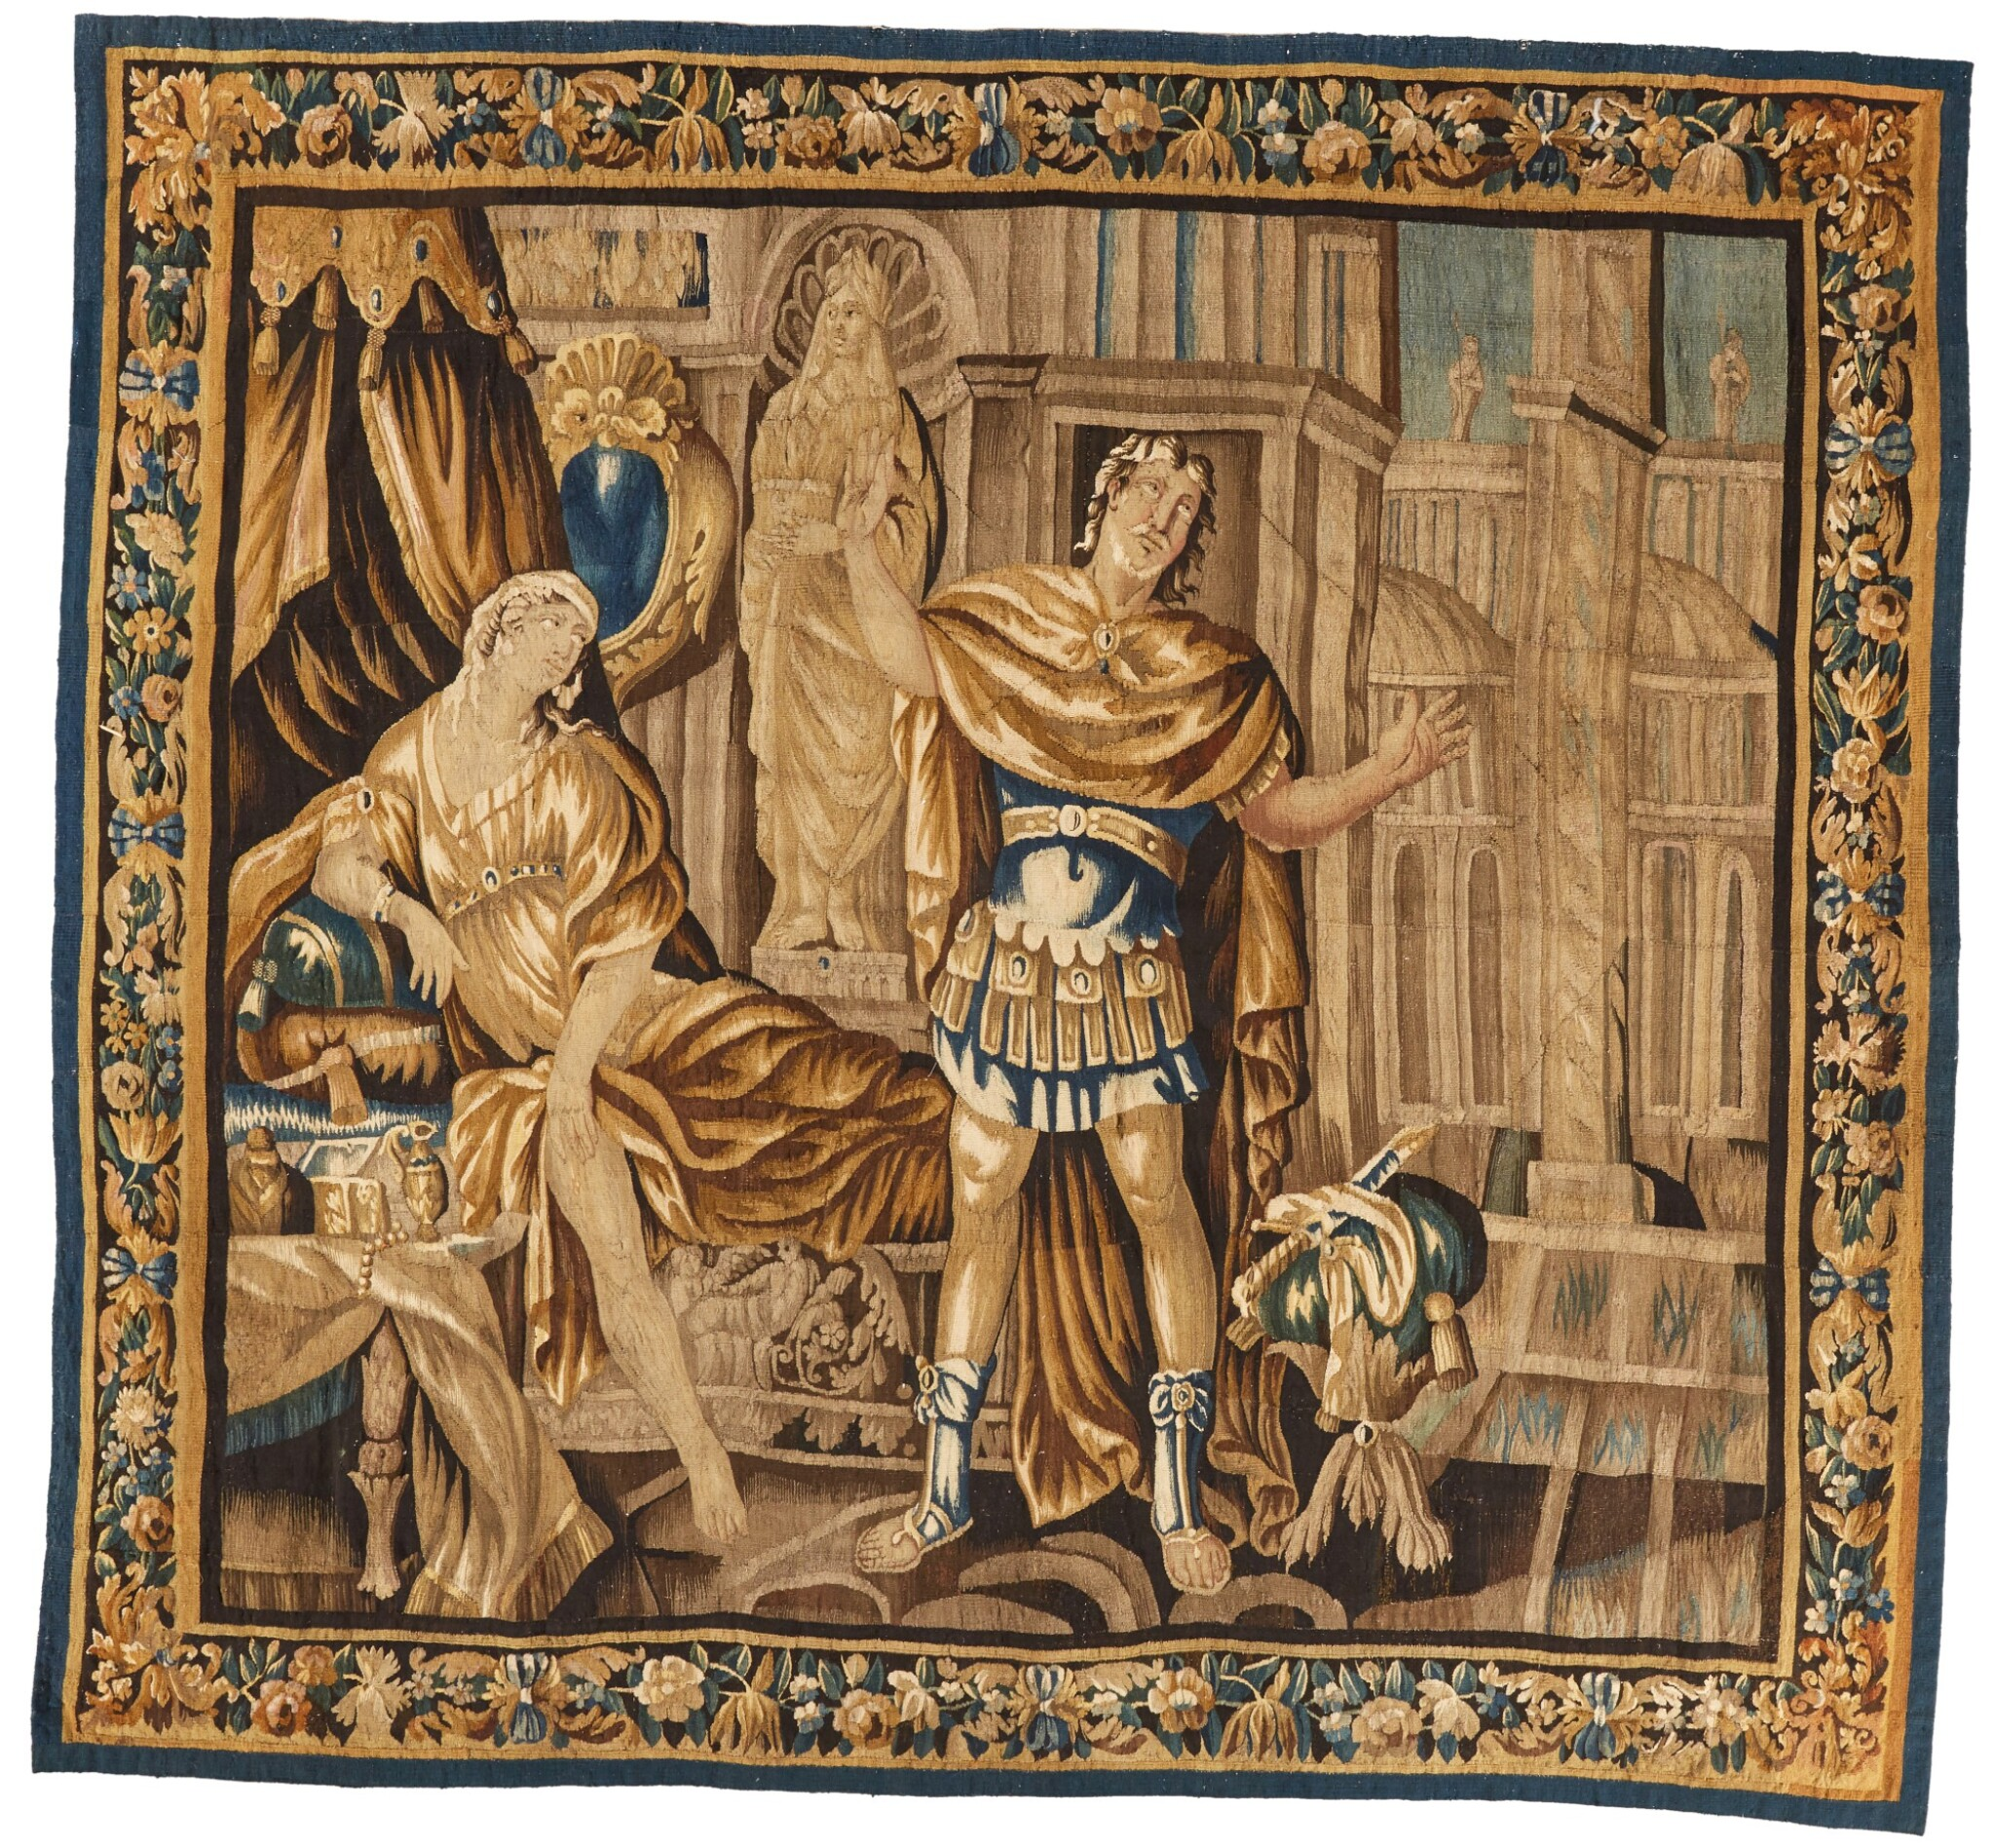 View 1 of Lot 18. A French classical tapestry, 'Portia', from the series illustrious women of Antiquity, Aubusson, second half 17th century, after Isaac Moillon.